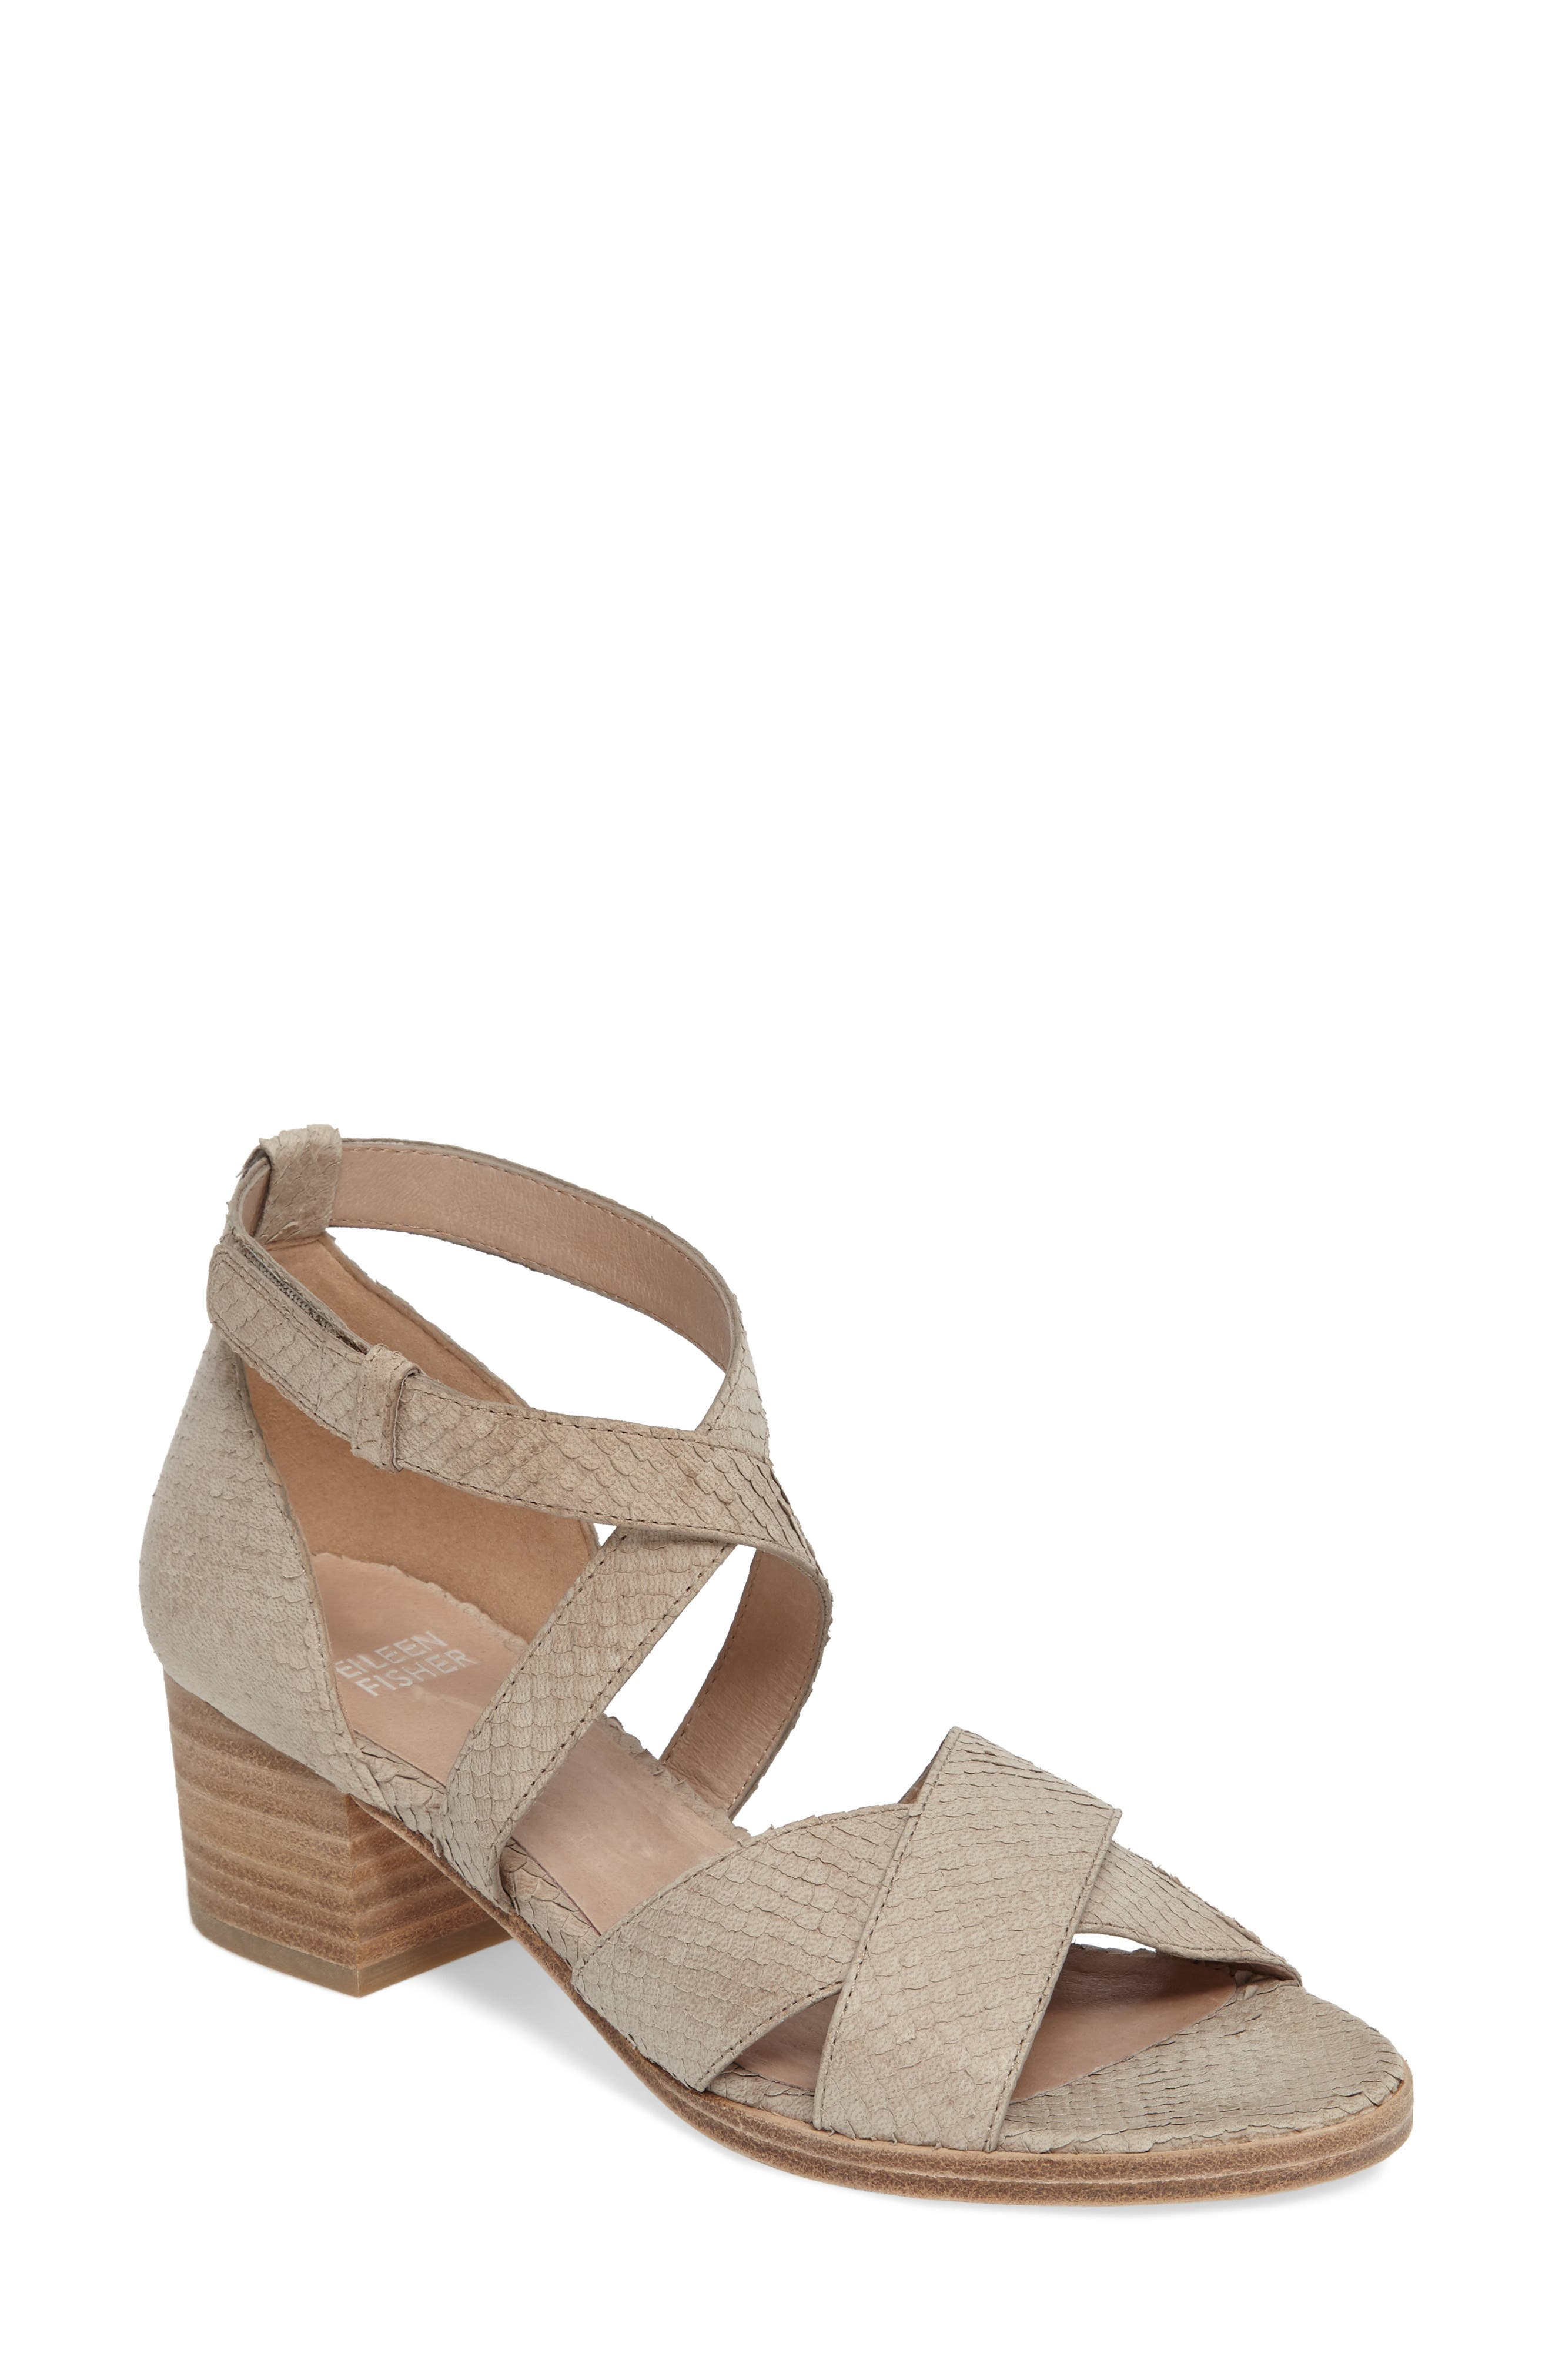 Alternate Image 1 Selected - Eileen Fisher Kerby Sandal (Women)